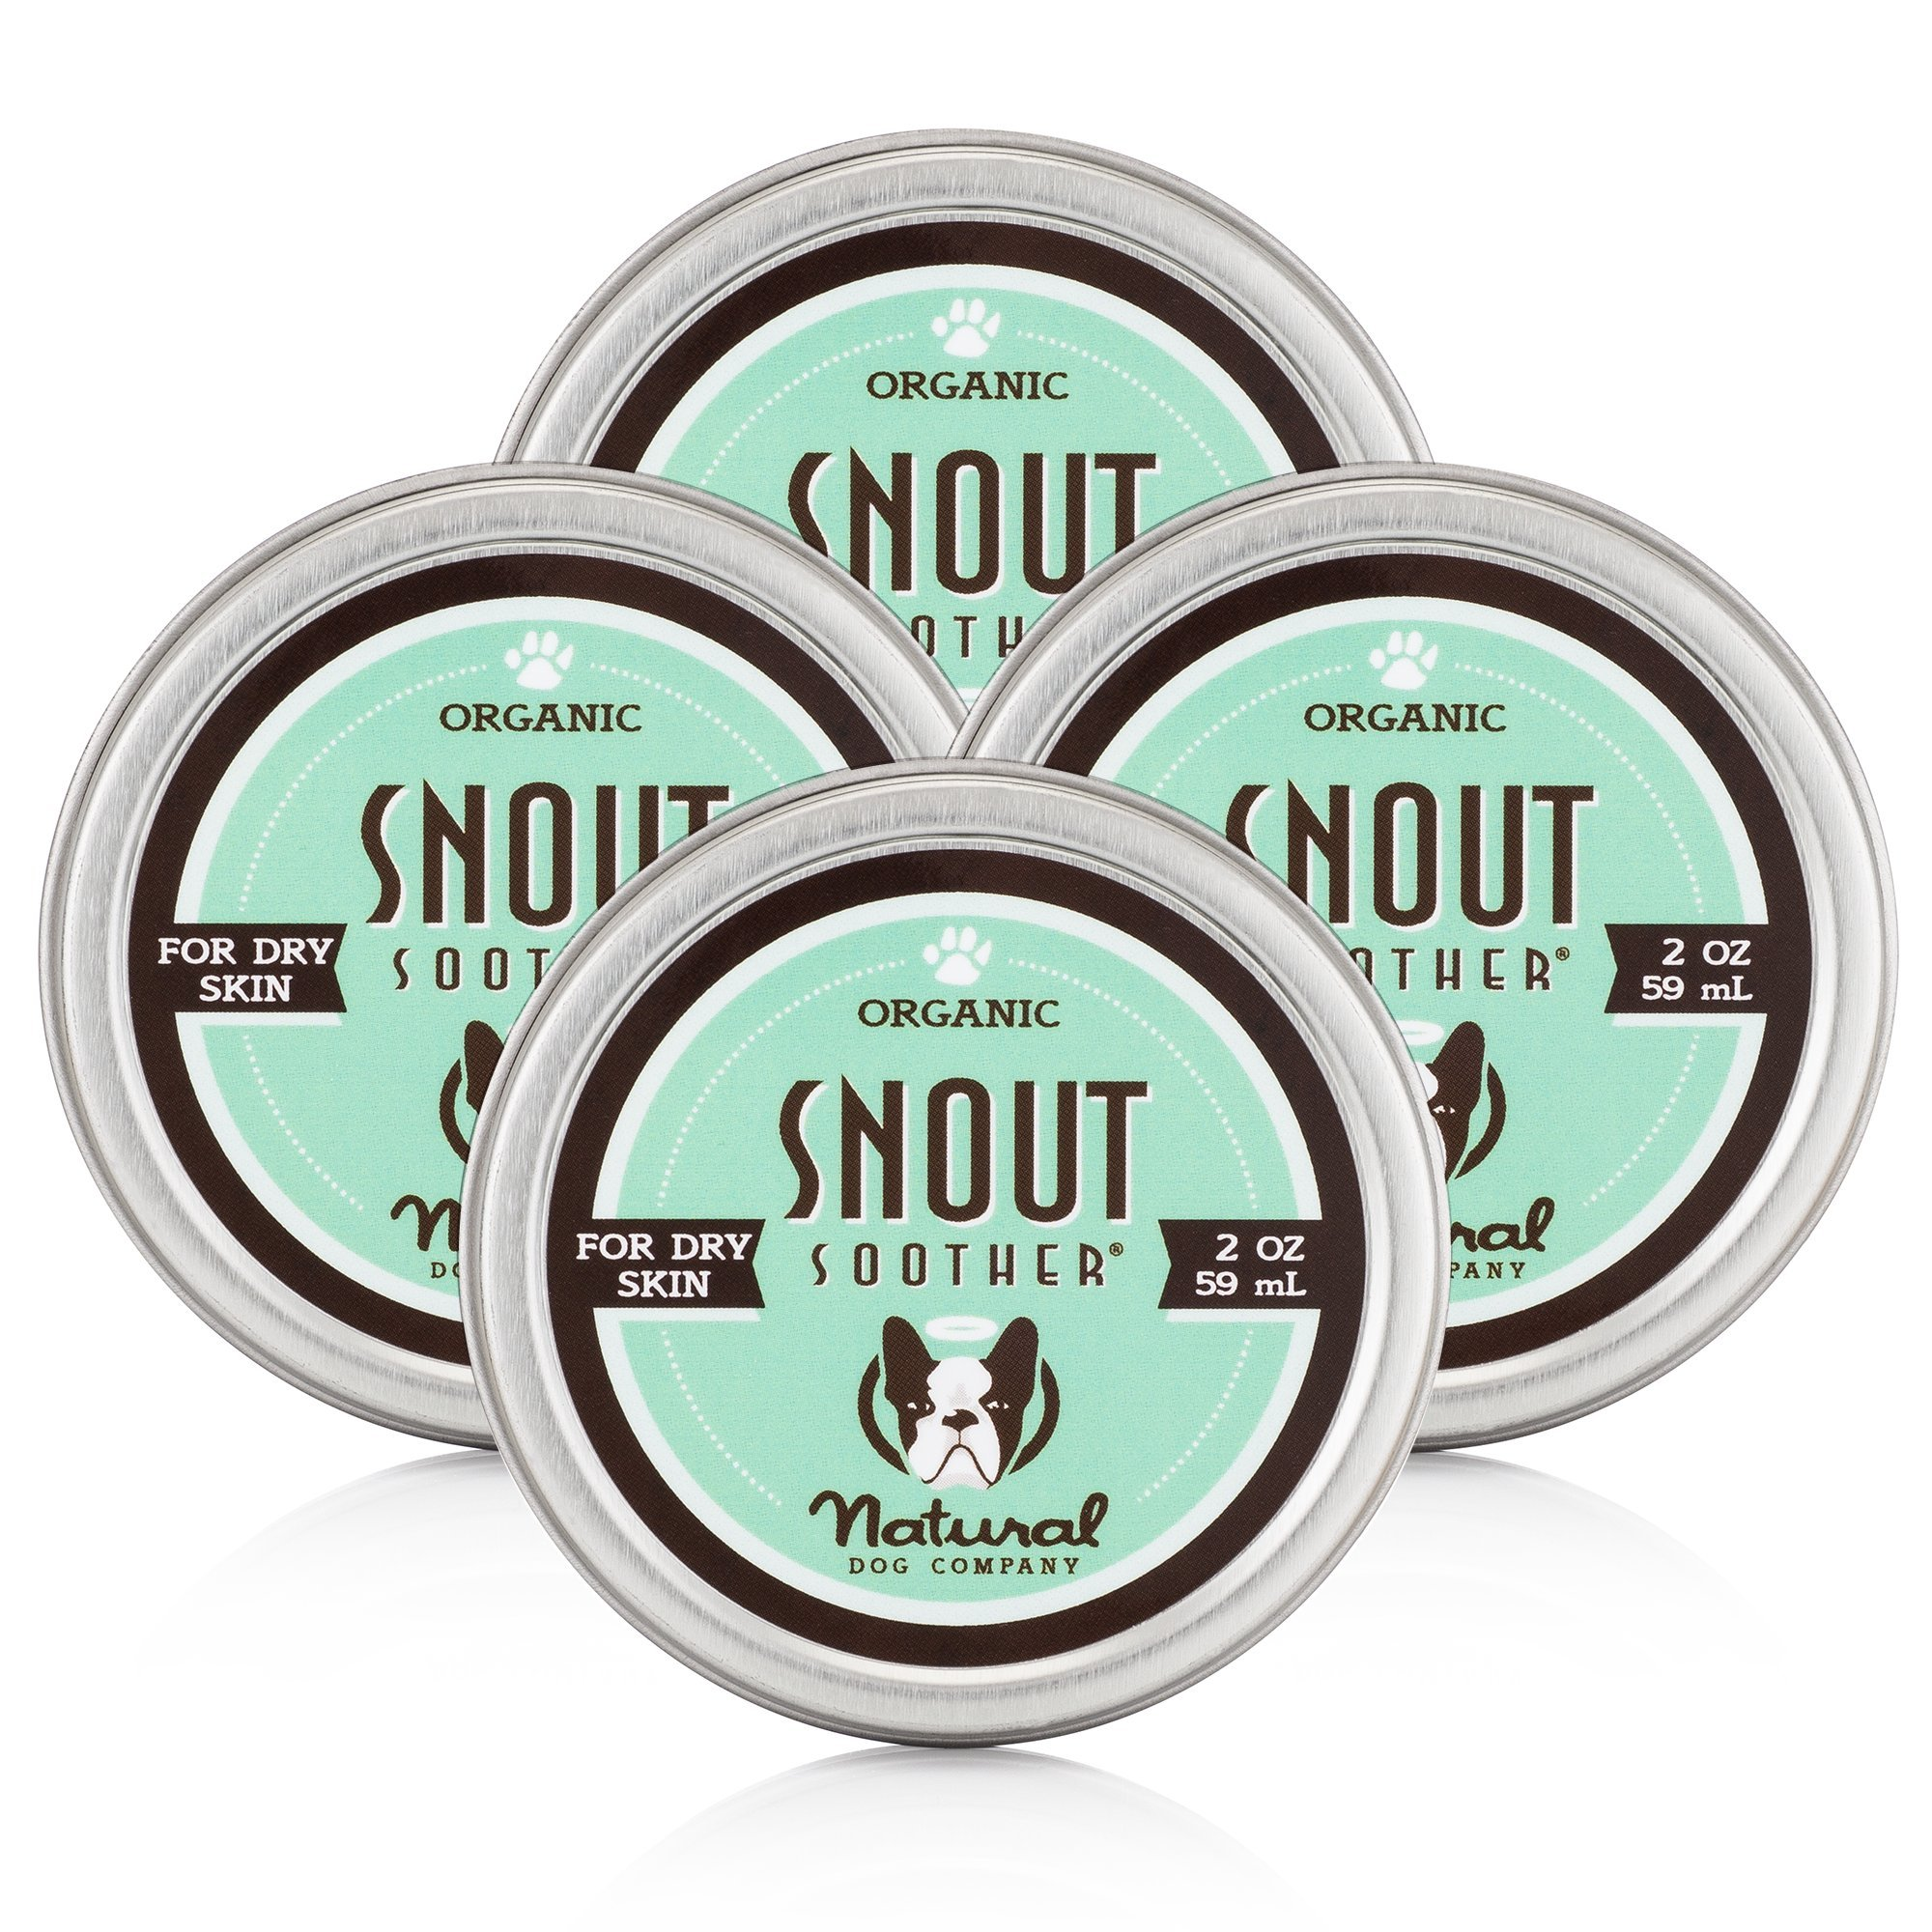 NaturalDog.com SNOUT SOOTHER | Organic, All-Natural | Dry Chapped Cracked Crusty Dog Nose Remedy | 2 oz Tin (4 Pack)